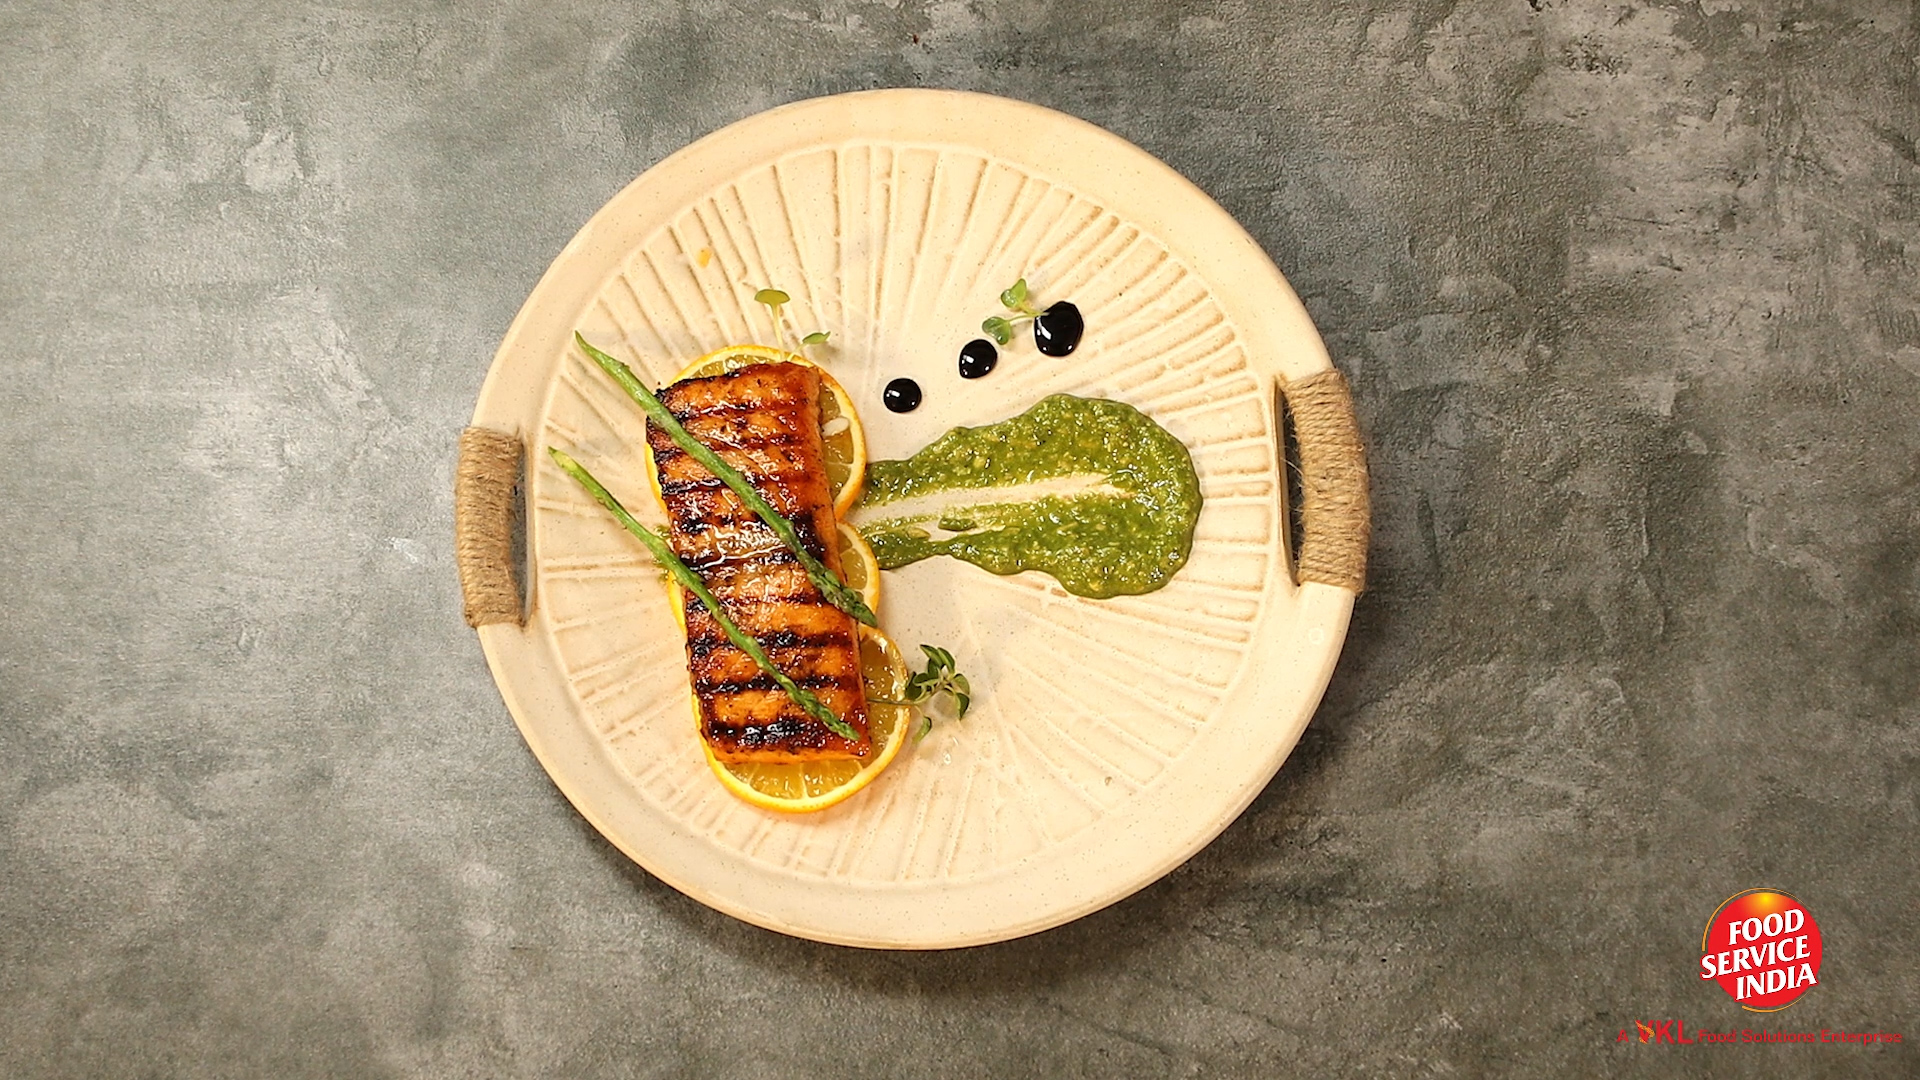 Cajun Spiced Grilled Salmon Served With Basil Pesto Sauce